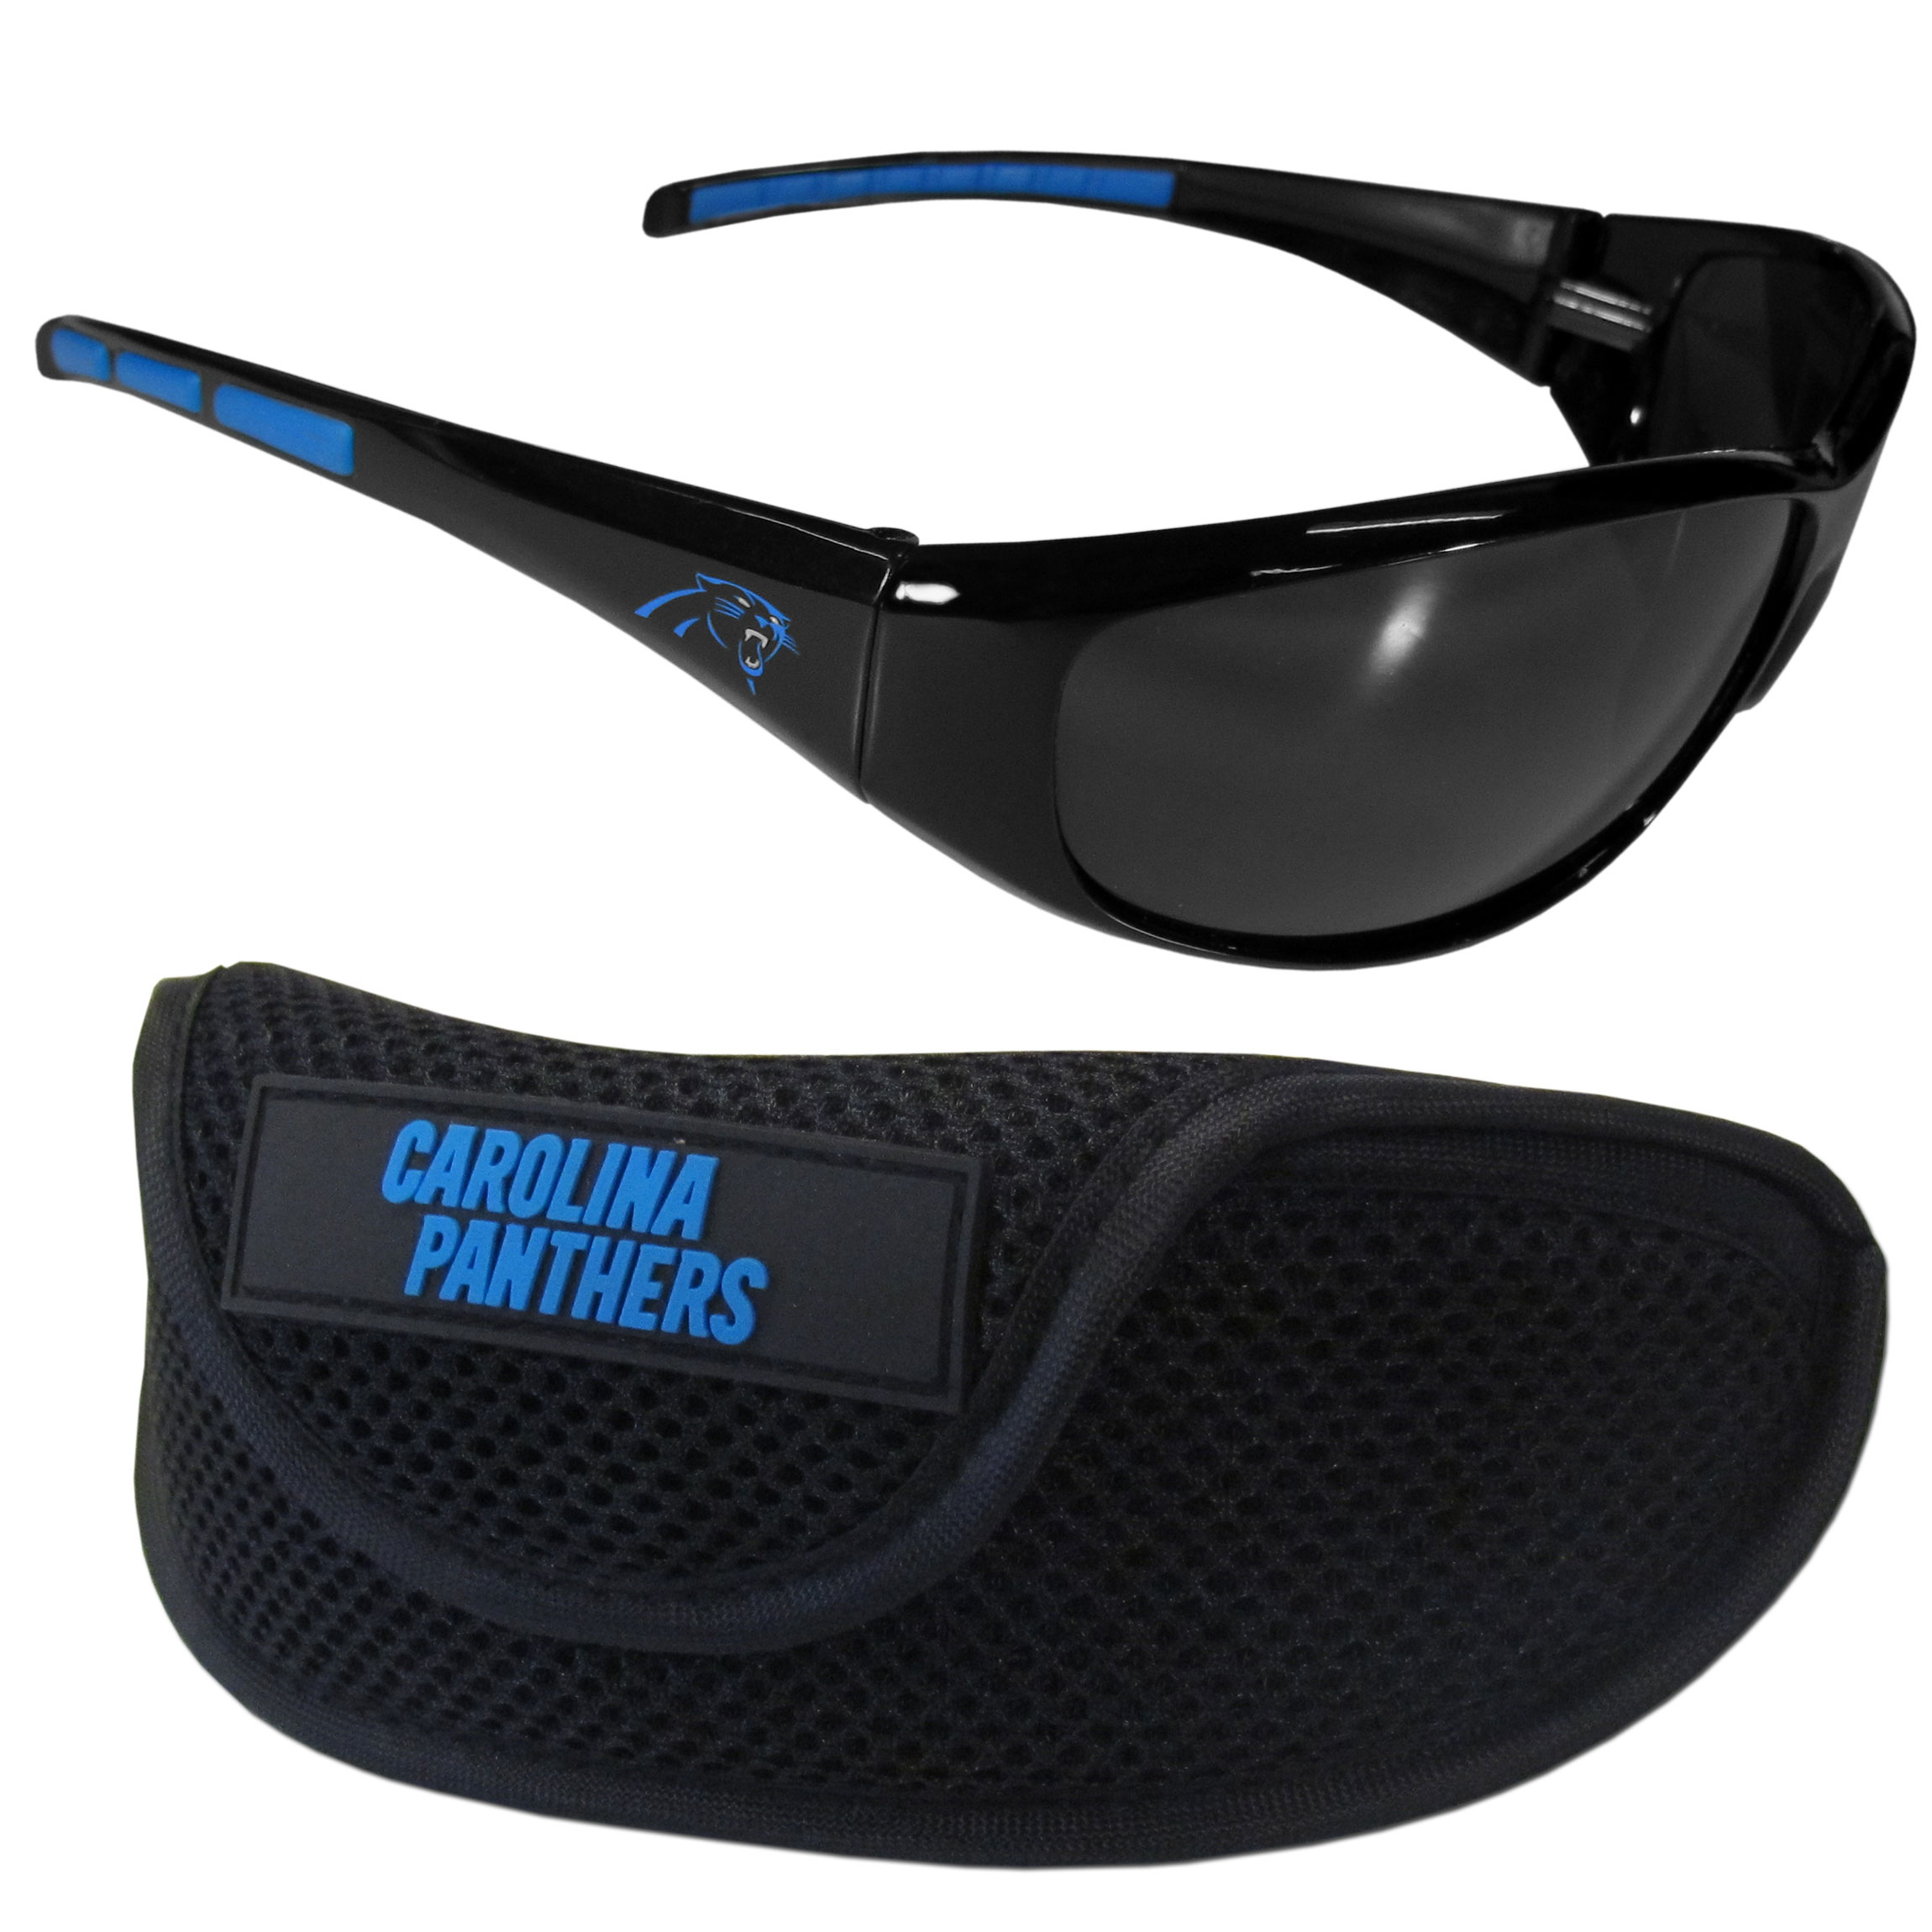 Carolina Panthers Wrap Sunglass and Case Set - This great set includes a high quality pair of  Carolina Panthers wrap sunglasses and sport carrying case.